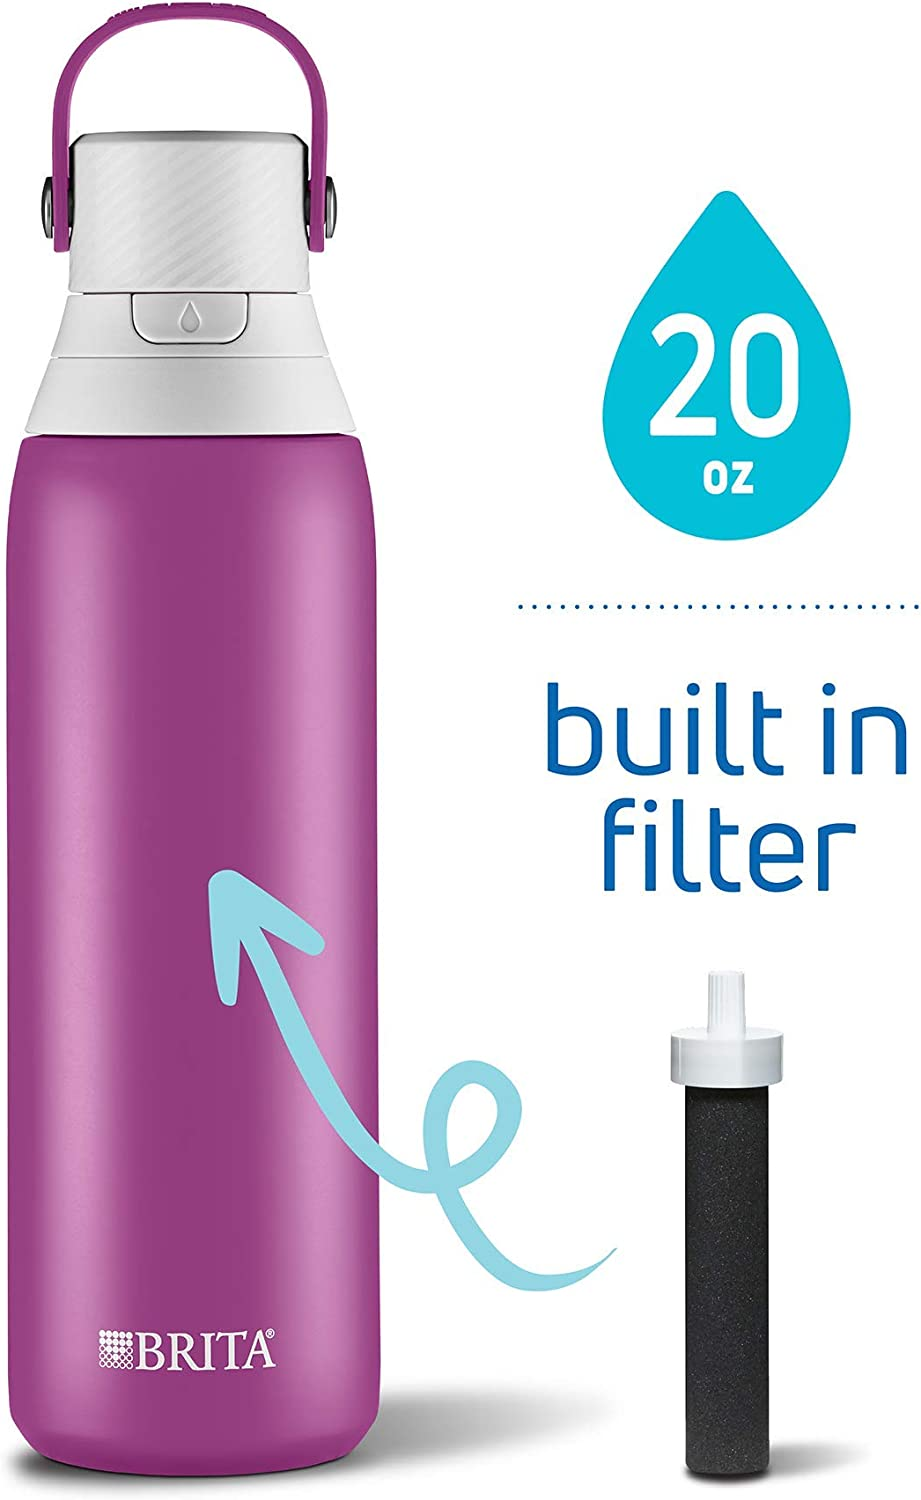 Brita 20 Ounce Premium Filtering Water Bottle with Filter - Double Wall Insulated Stainless Steel Bottle - BPA Free - Lilac and Assorted Colors